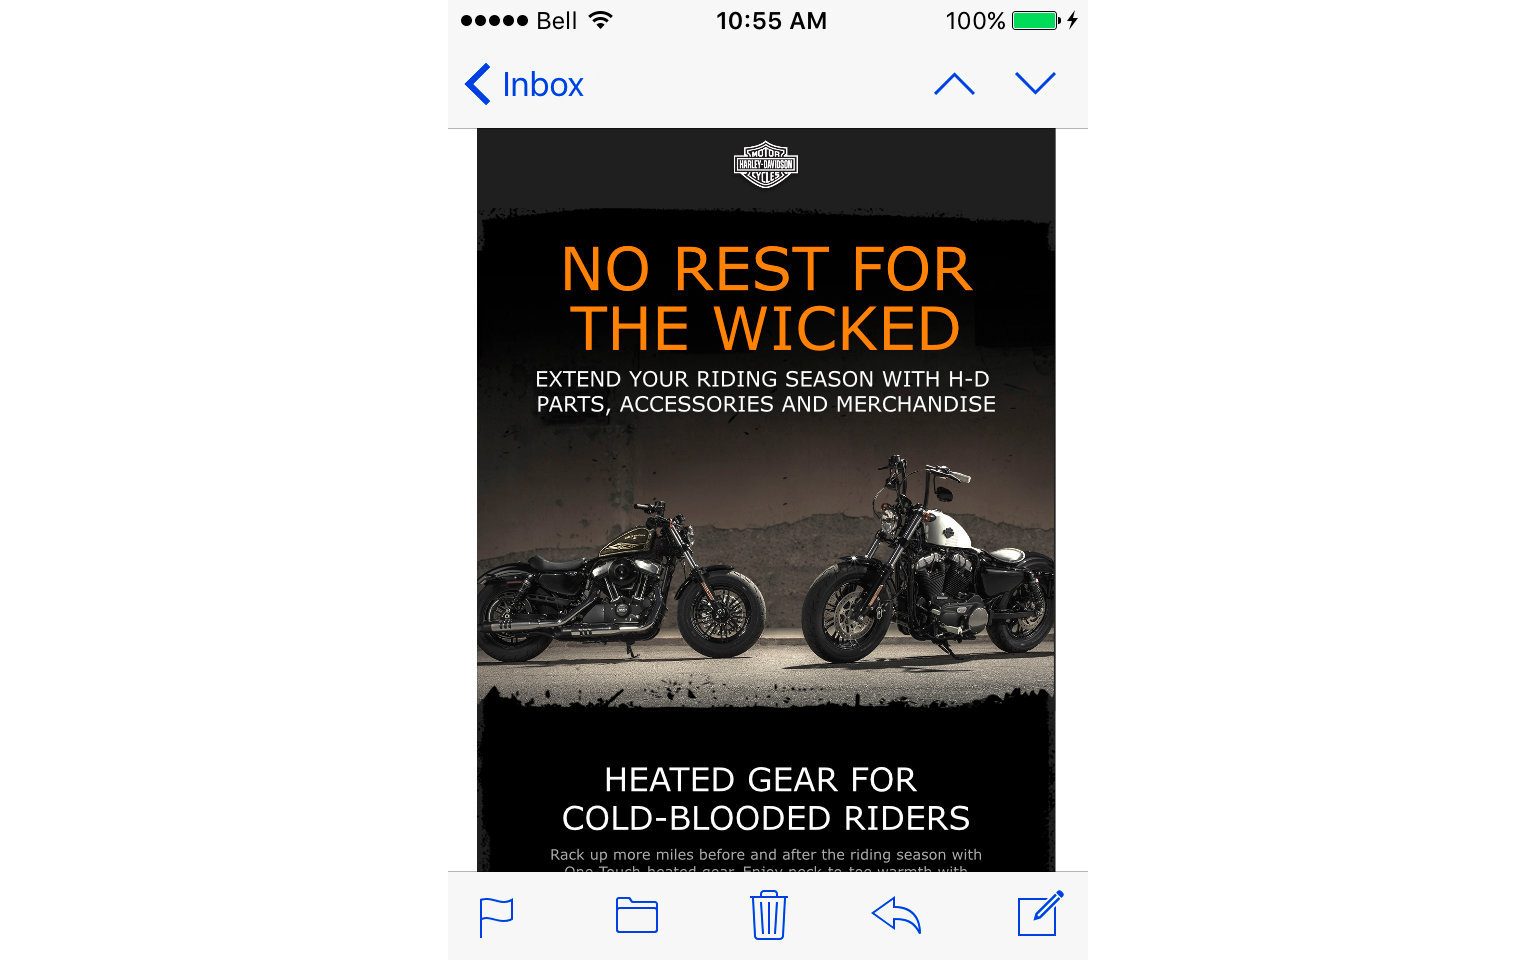 HARLEY-DAVIDSON ACCESSORIES EMAIL  2/10